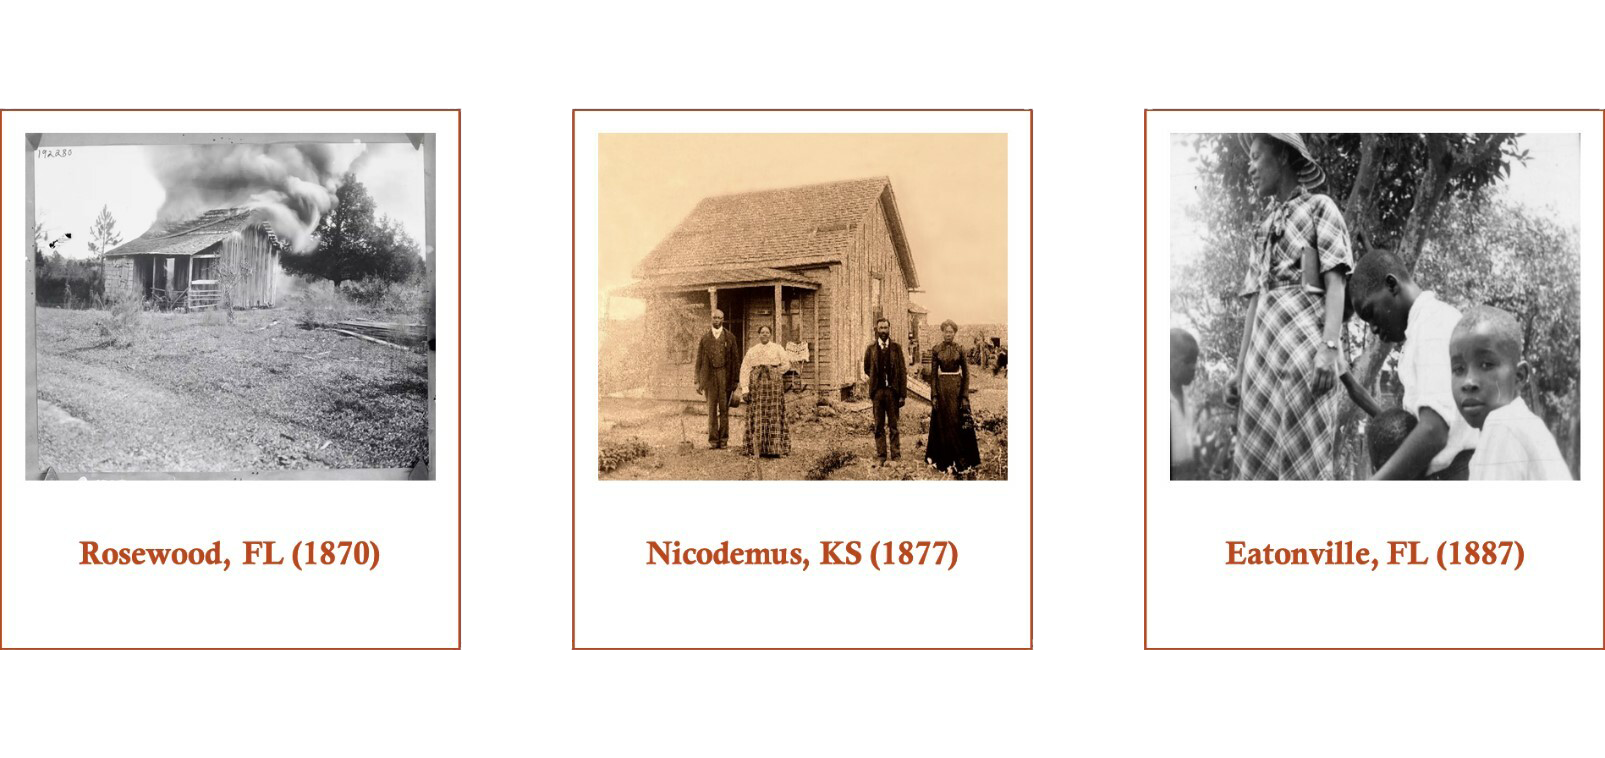 Three photographs. The left image shows a house in Rosewood, FL in 1870. The center images shows four people standing in front of a building in Nicodemus, KS in 1877. The right image shows a woman and three children in Eatonville, FL in 1887.